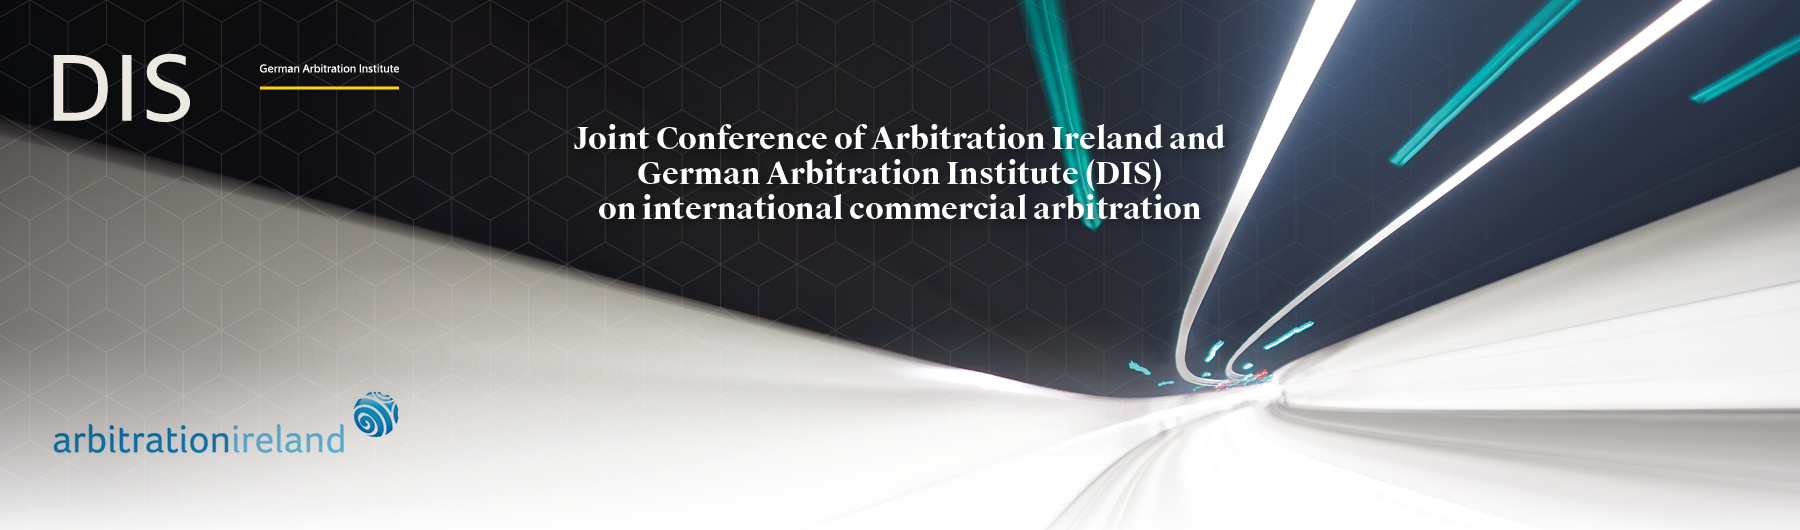 Arbitration Ireland and German Arbitration Institute (DIS) Event on international commercial arbitration